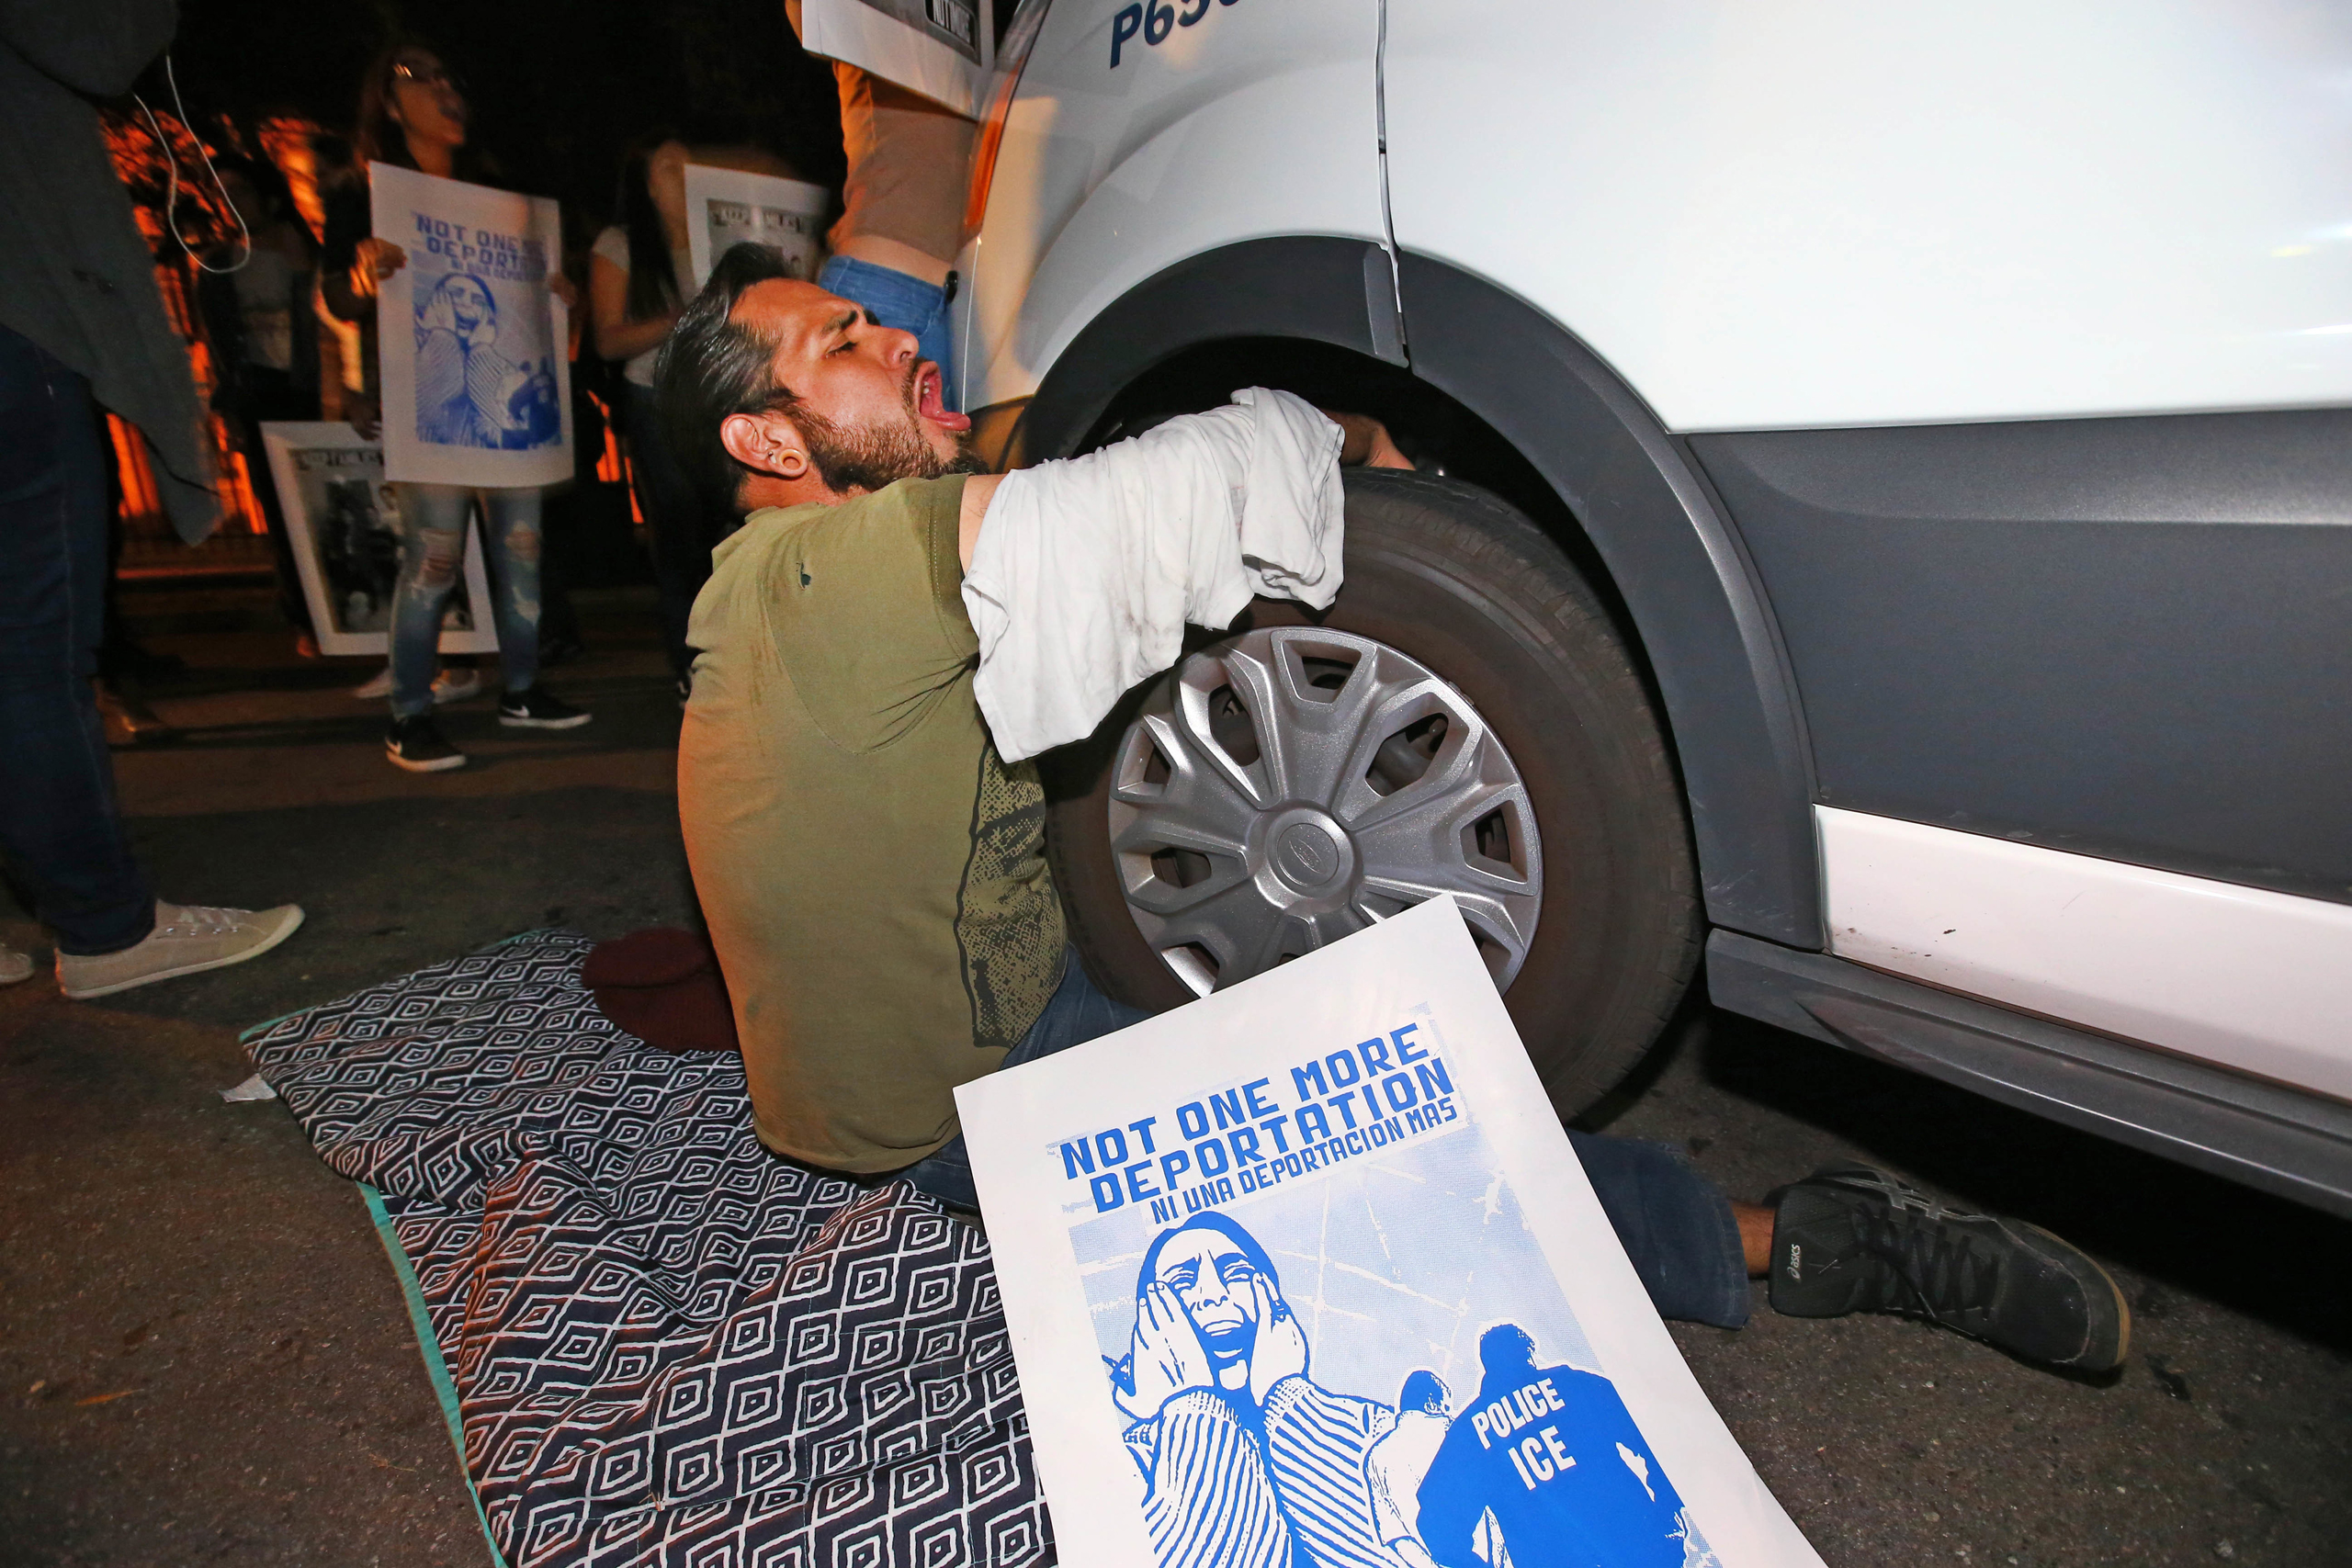 A protester locked himself to the van carrying Guadalupe Garcia de Rayos that is stopped by protesters outside the Immigration and Customs Enforcement facility, in Phoenix on Feb. 8, 2017.